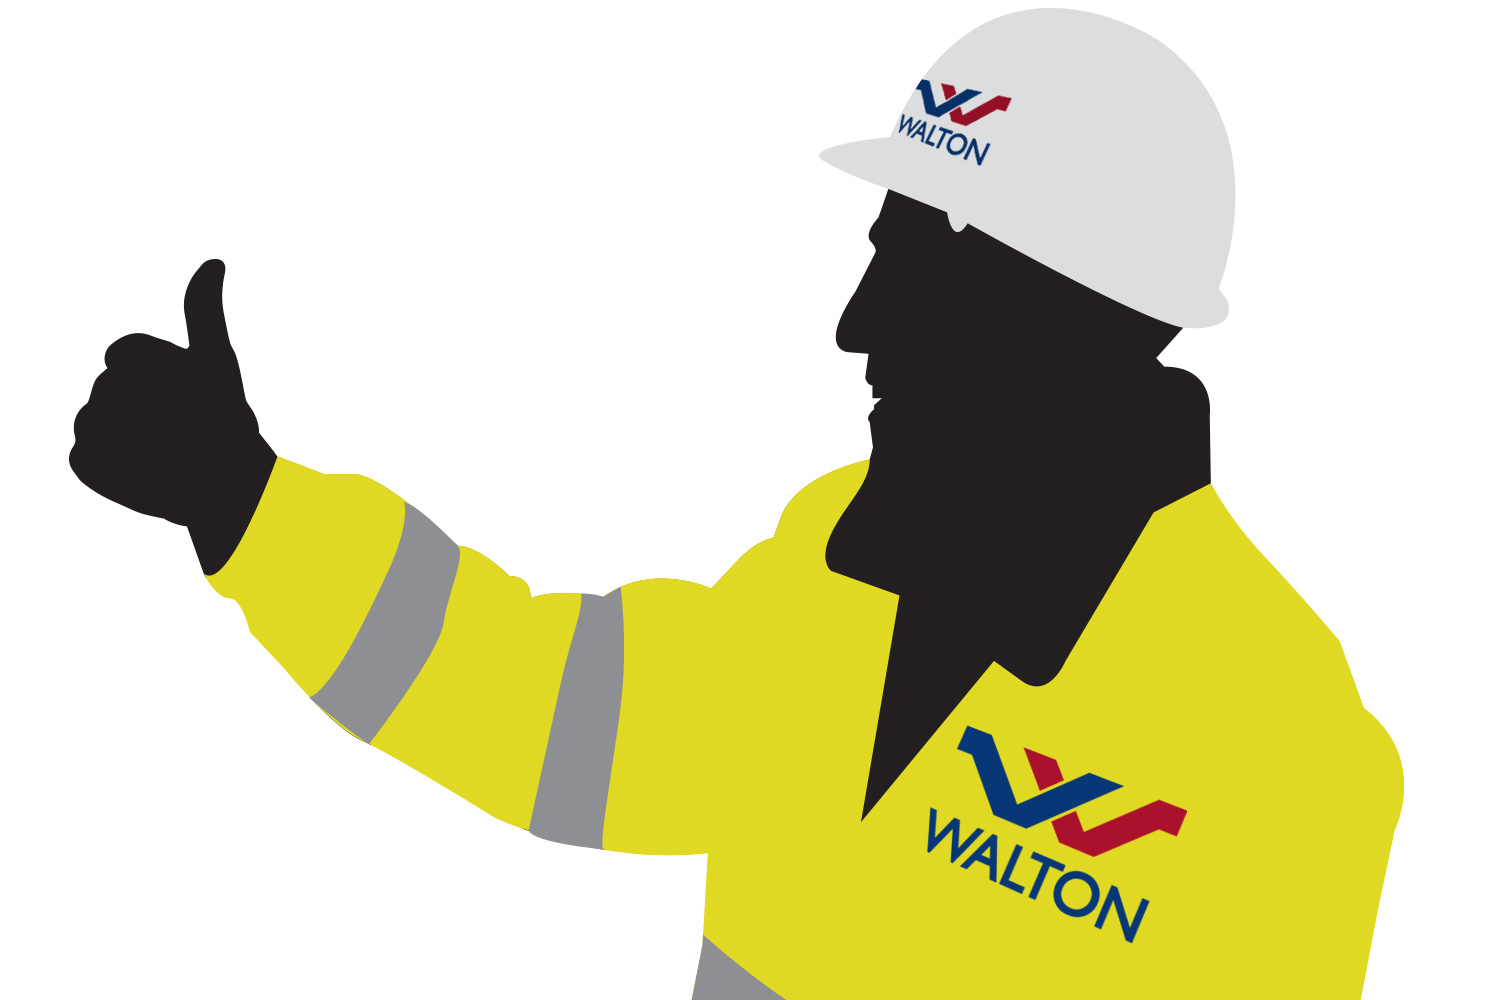 Walton workman